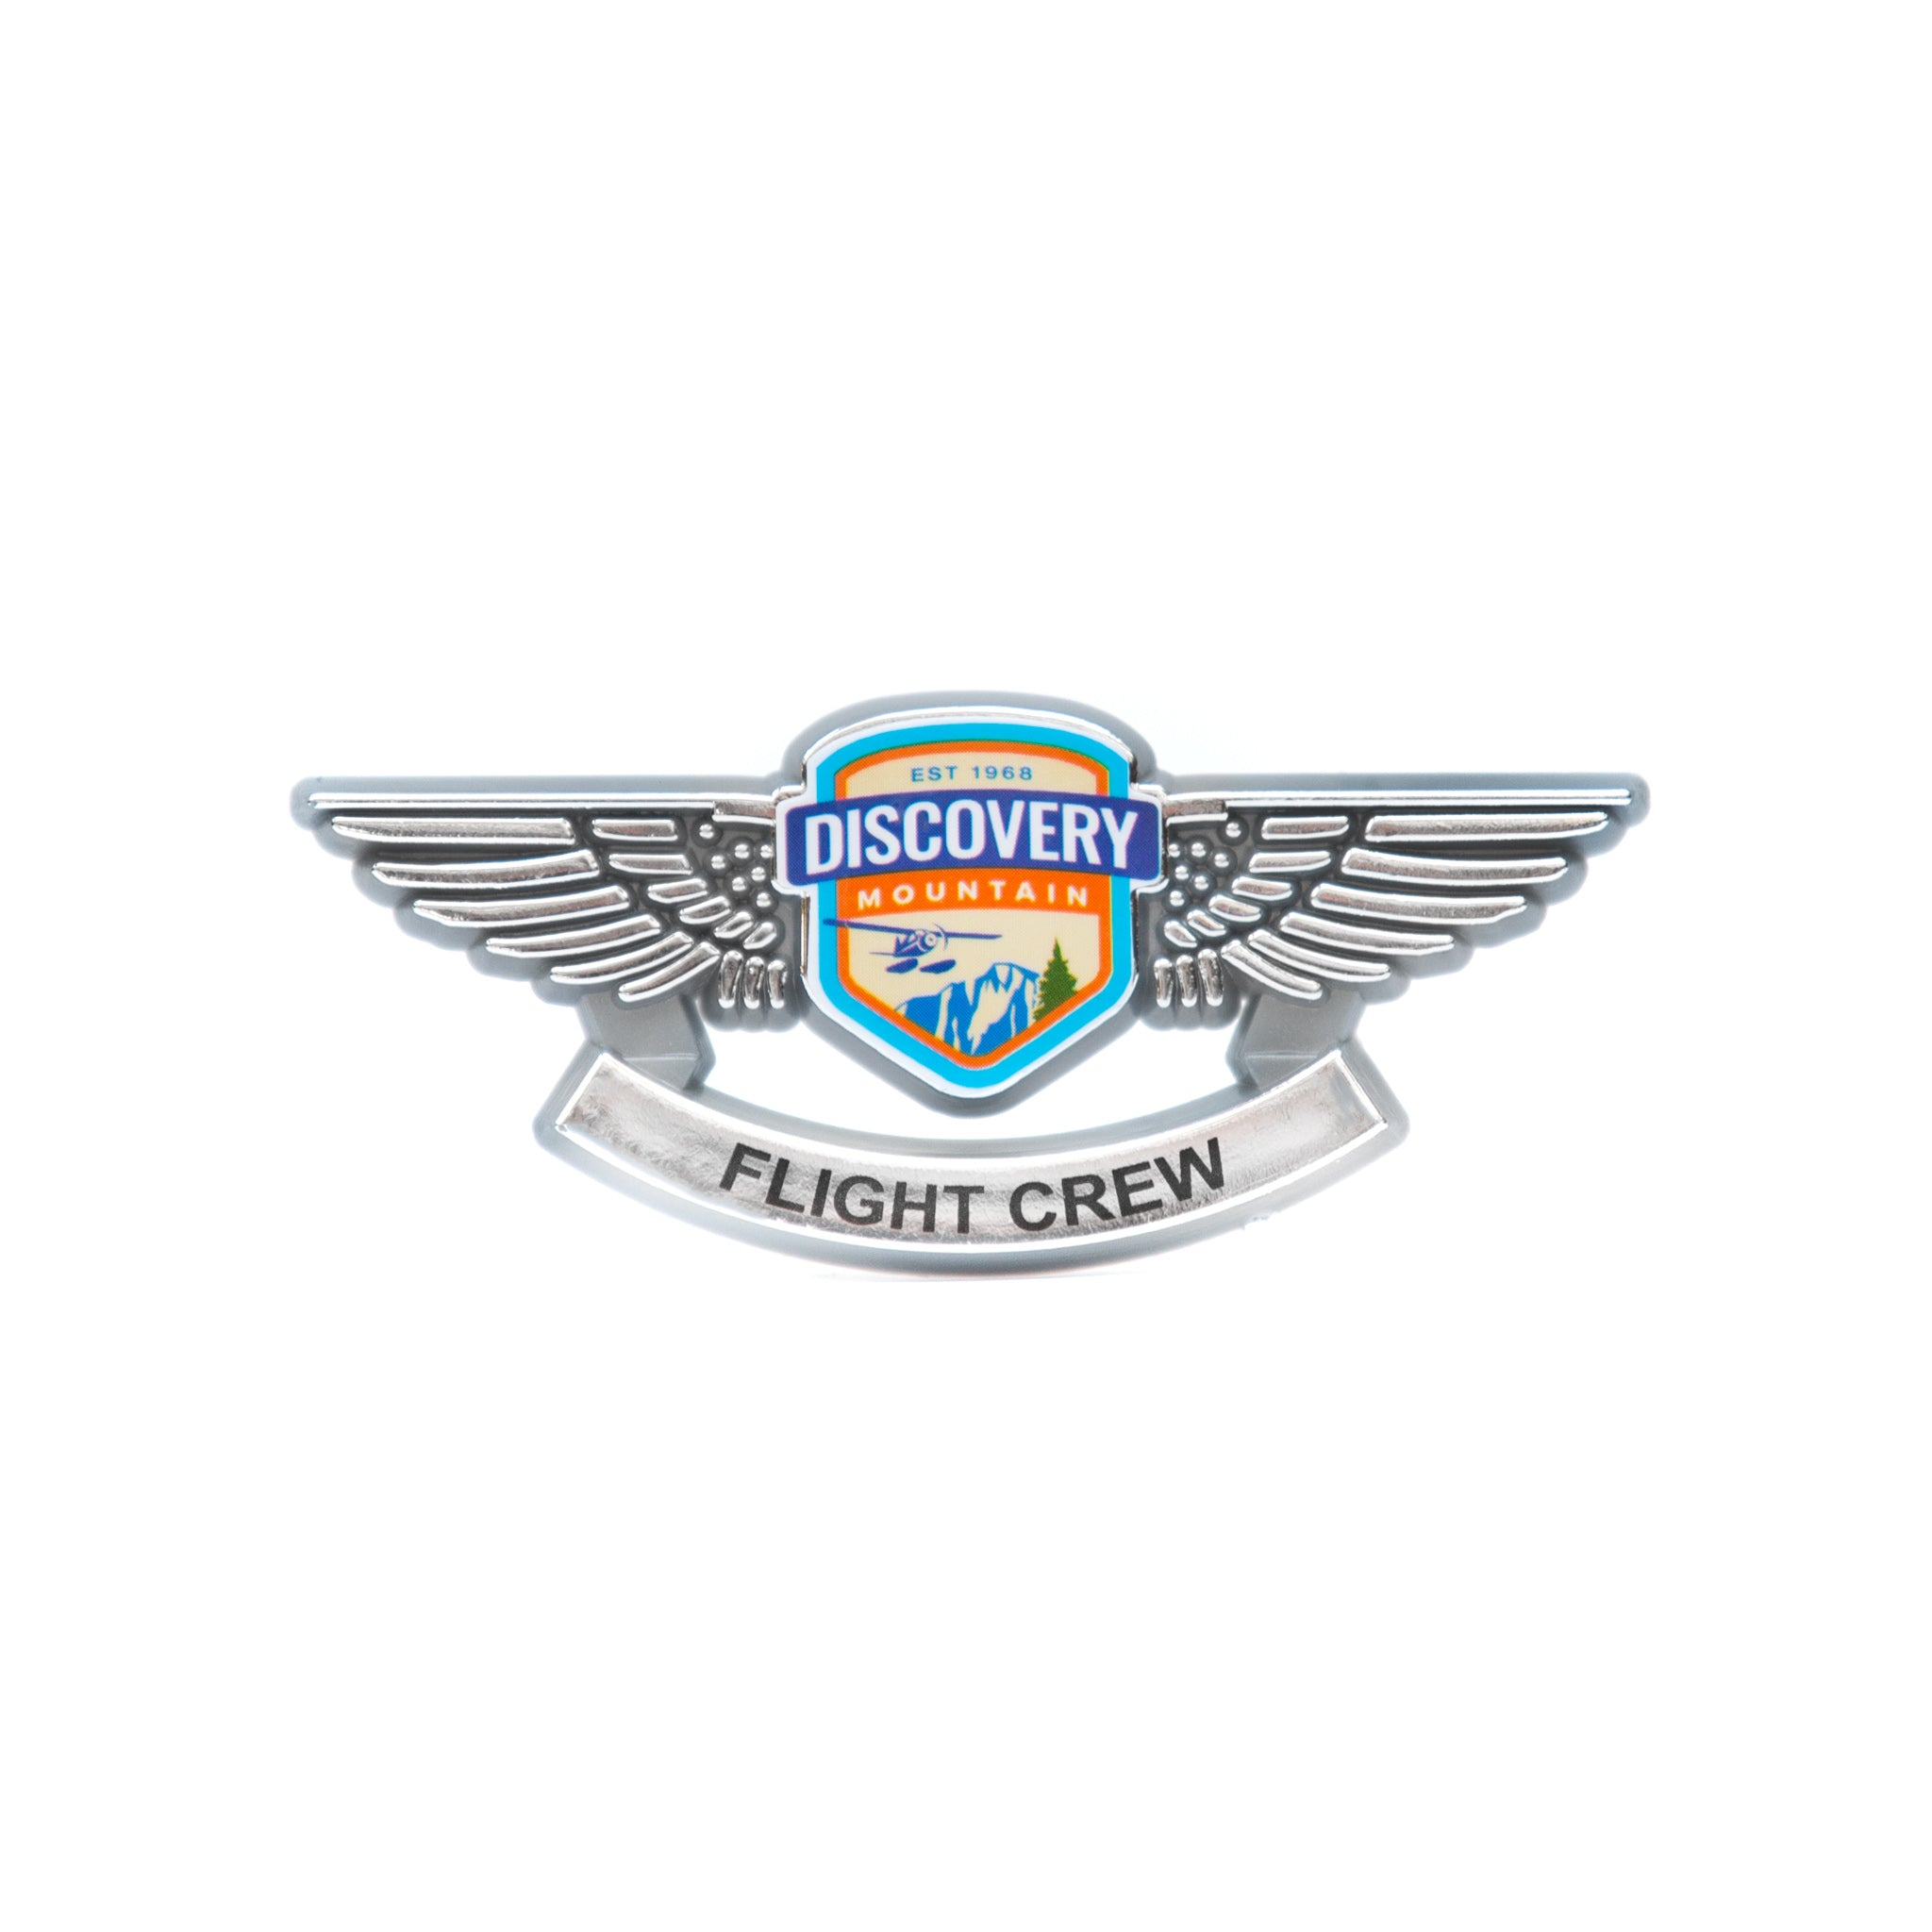 Discovery Mountain Flight Crew Pin